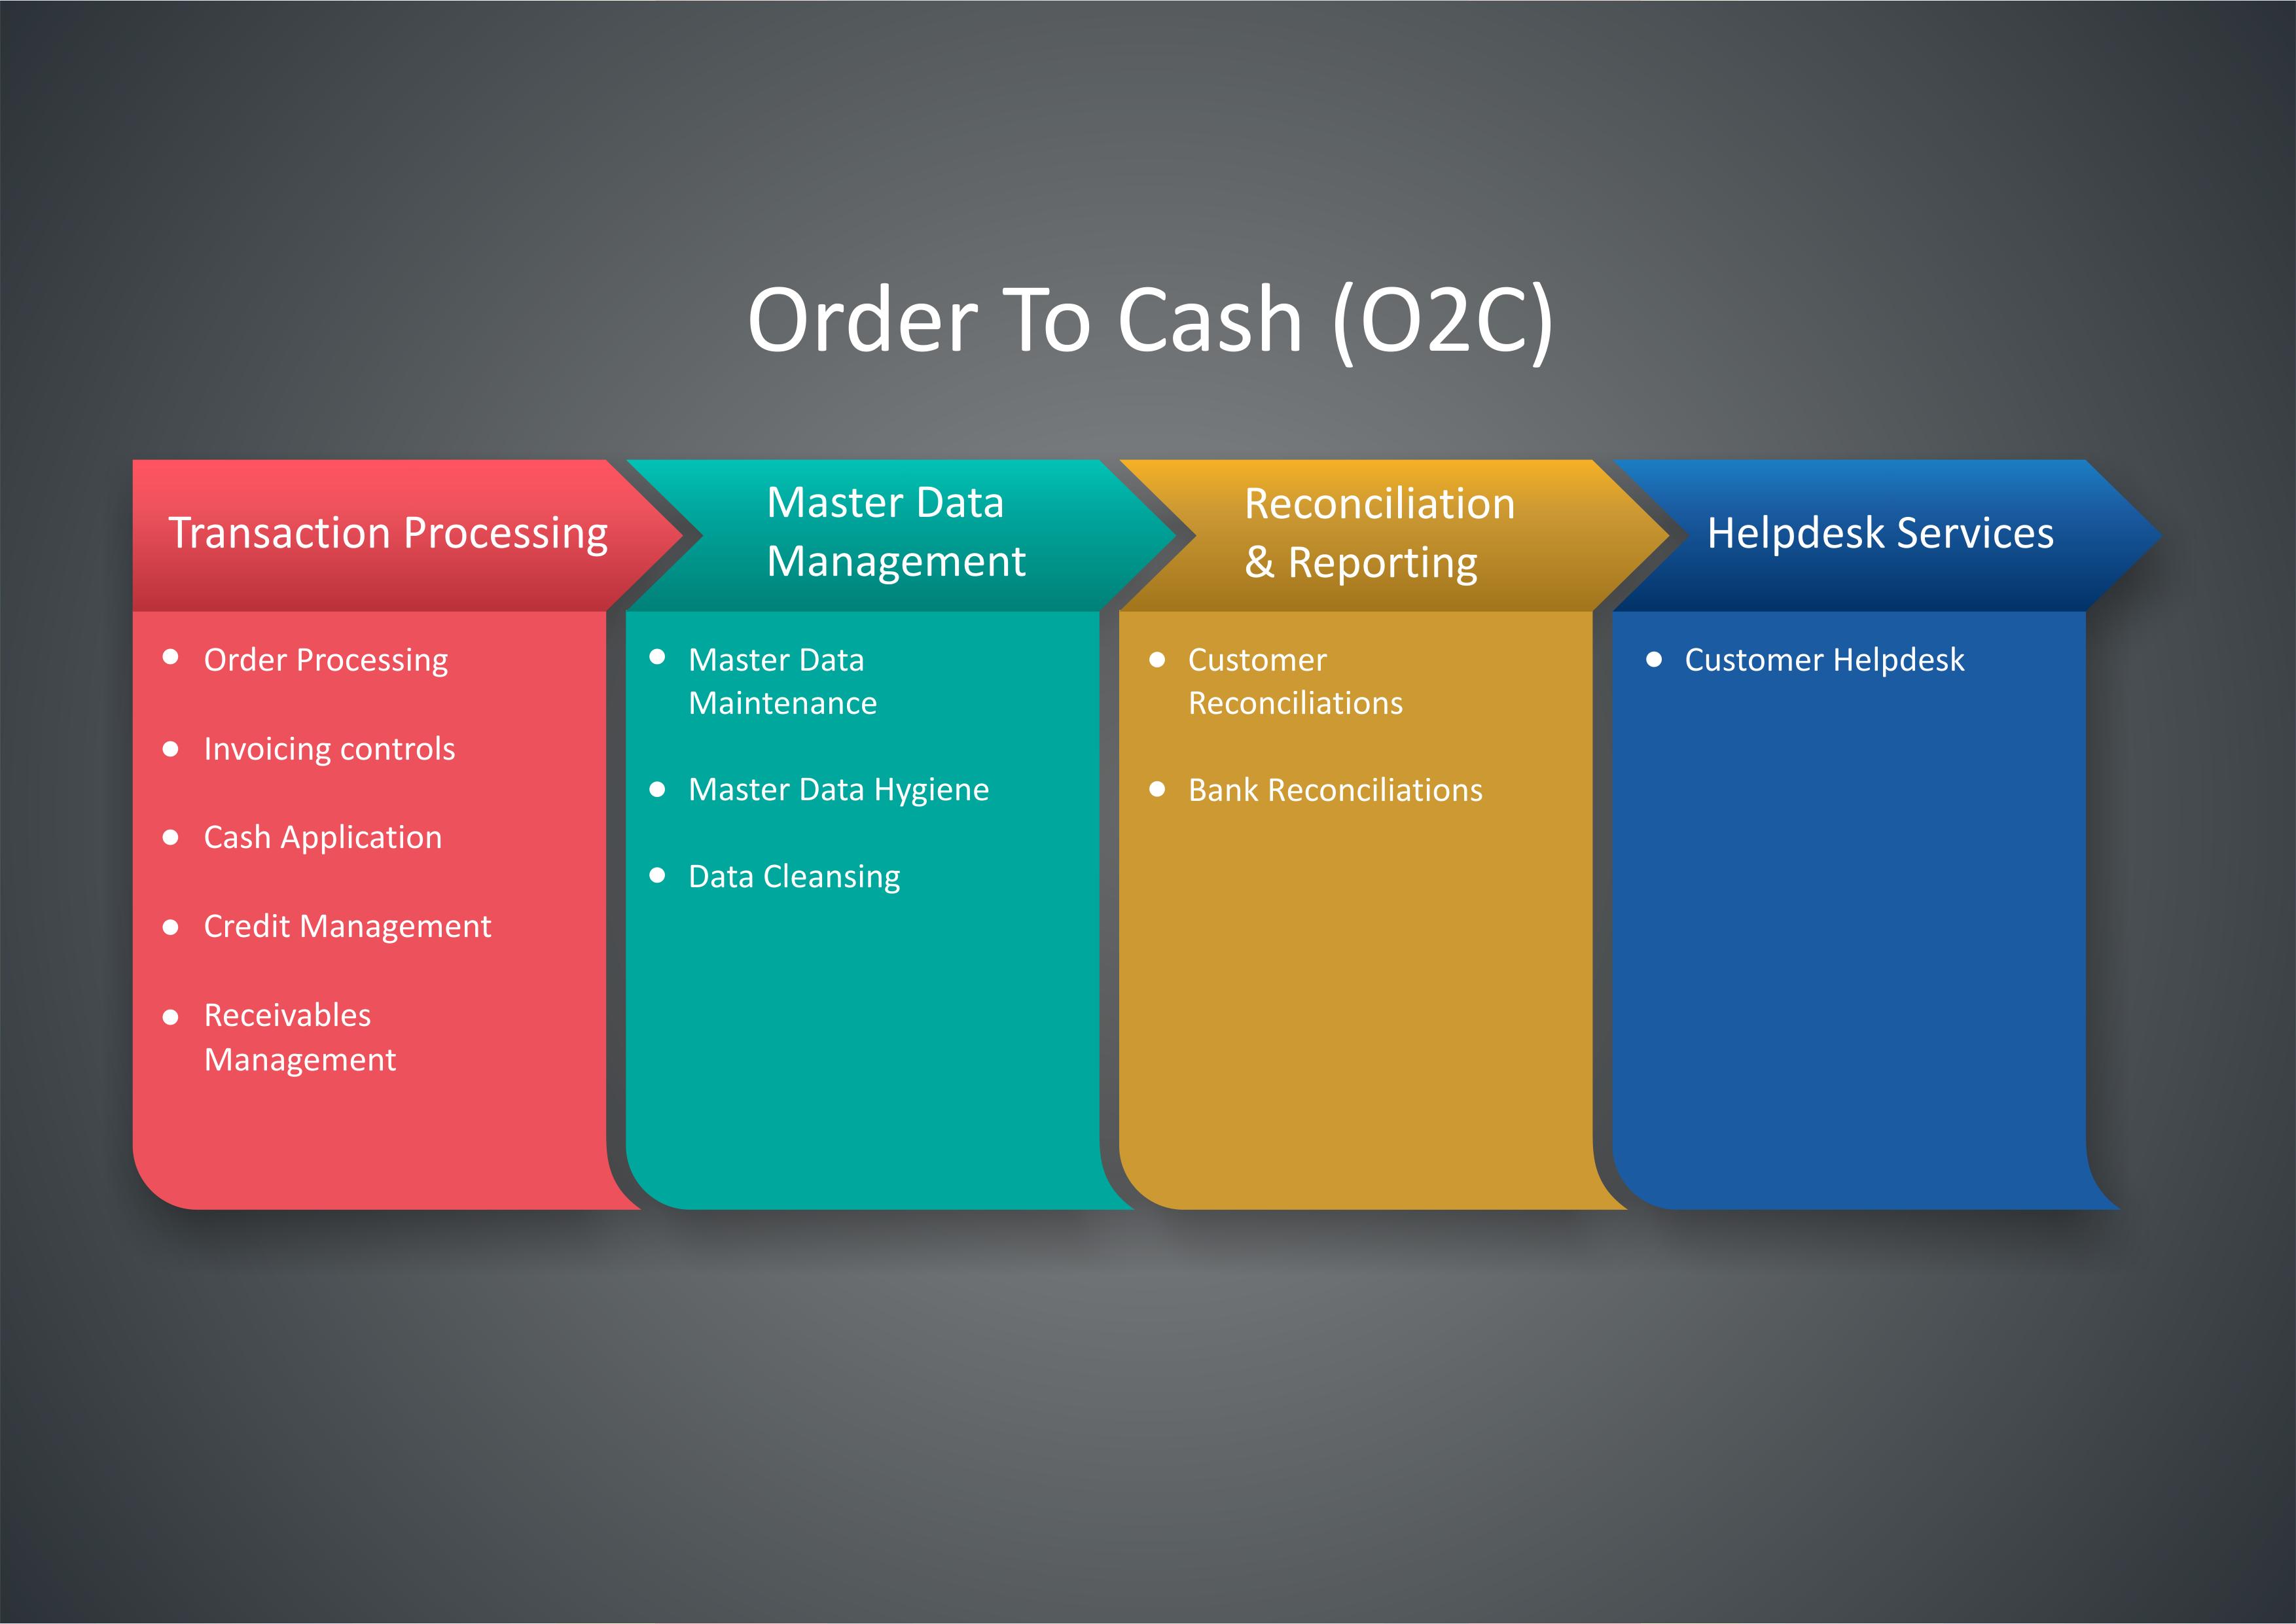 what is cash application in o2c